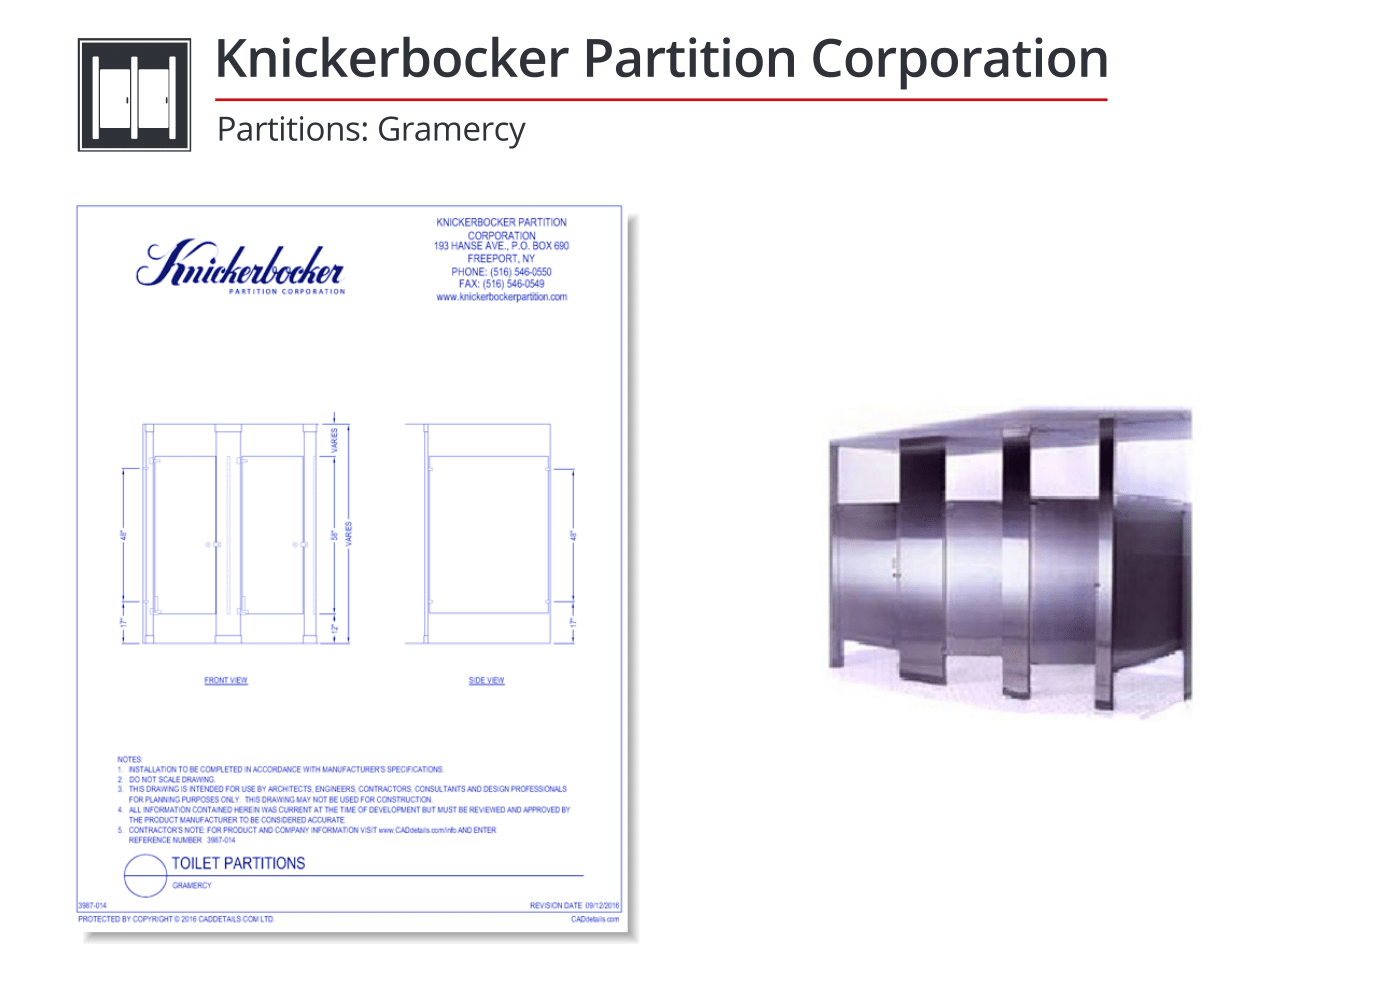 Knickerbocker-Partition-Corporation--Gramercy-Restroom-Partition-CADdrawing.png